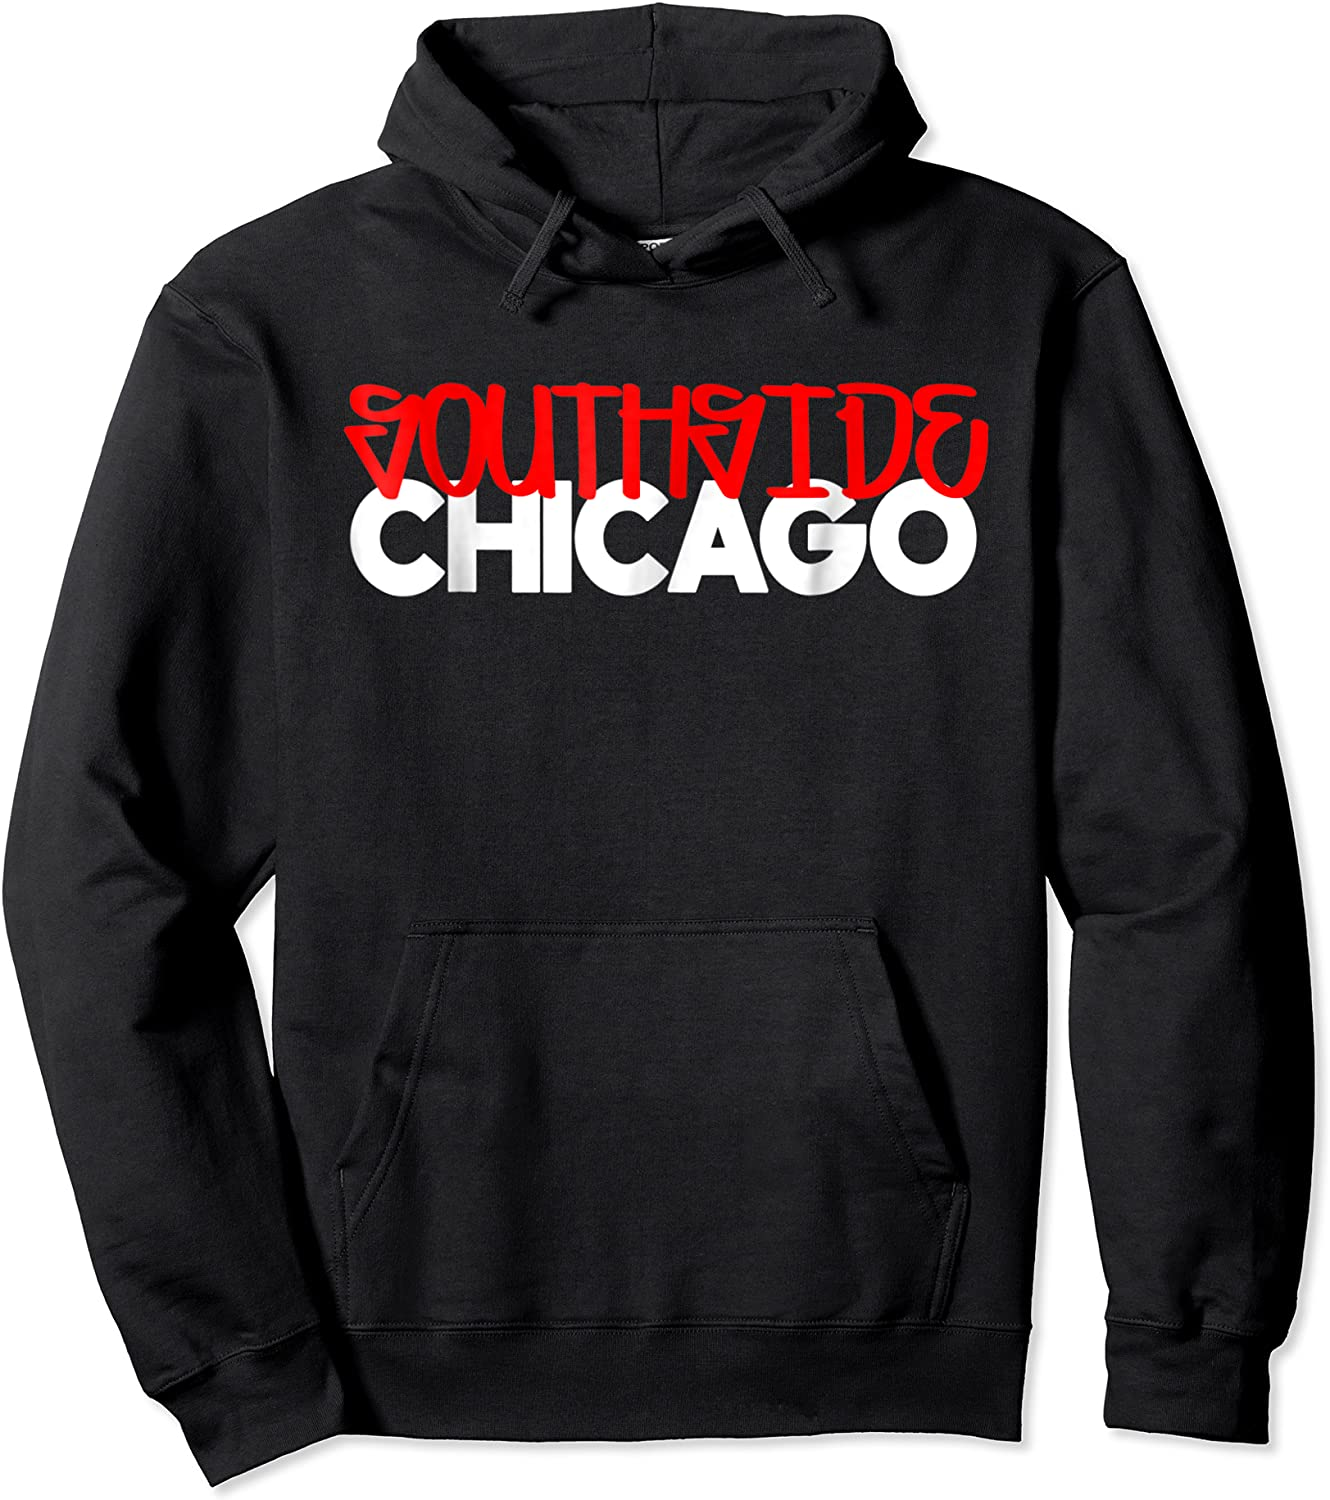 S S Chicago Shirts For | Southside Chi Shirt Unisex Pullover Hoodie